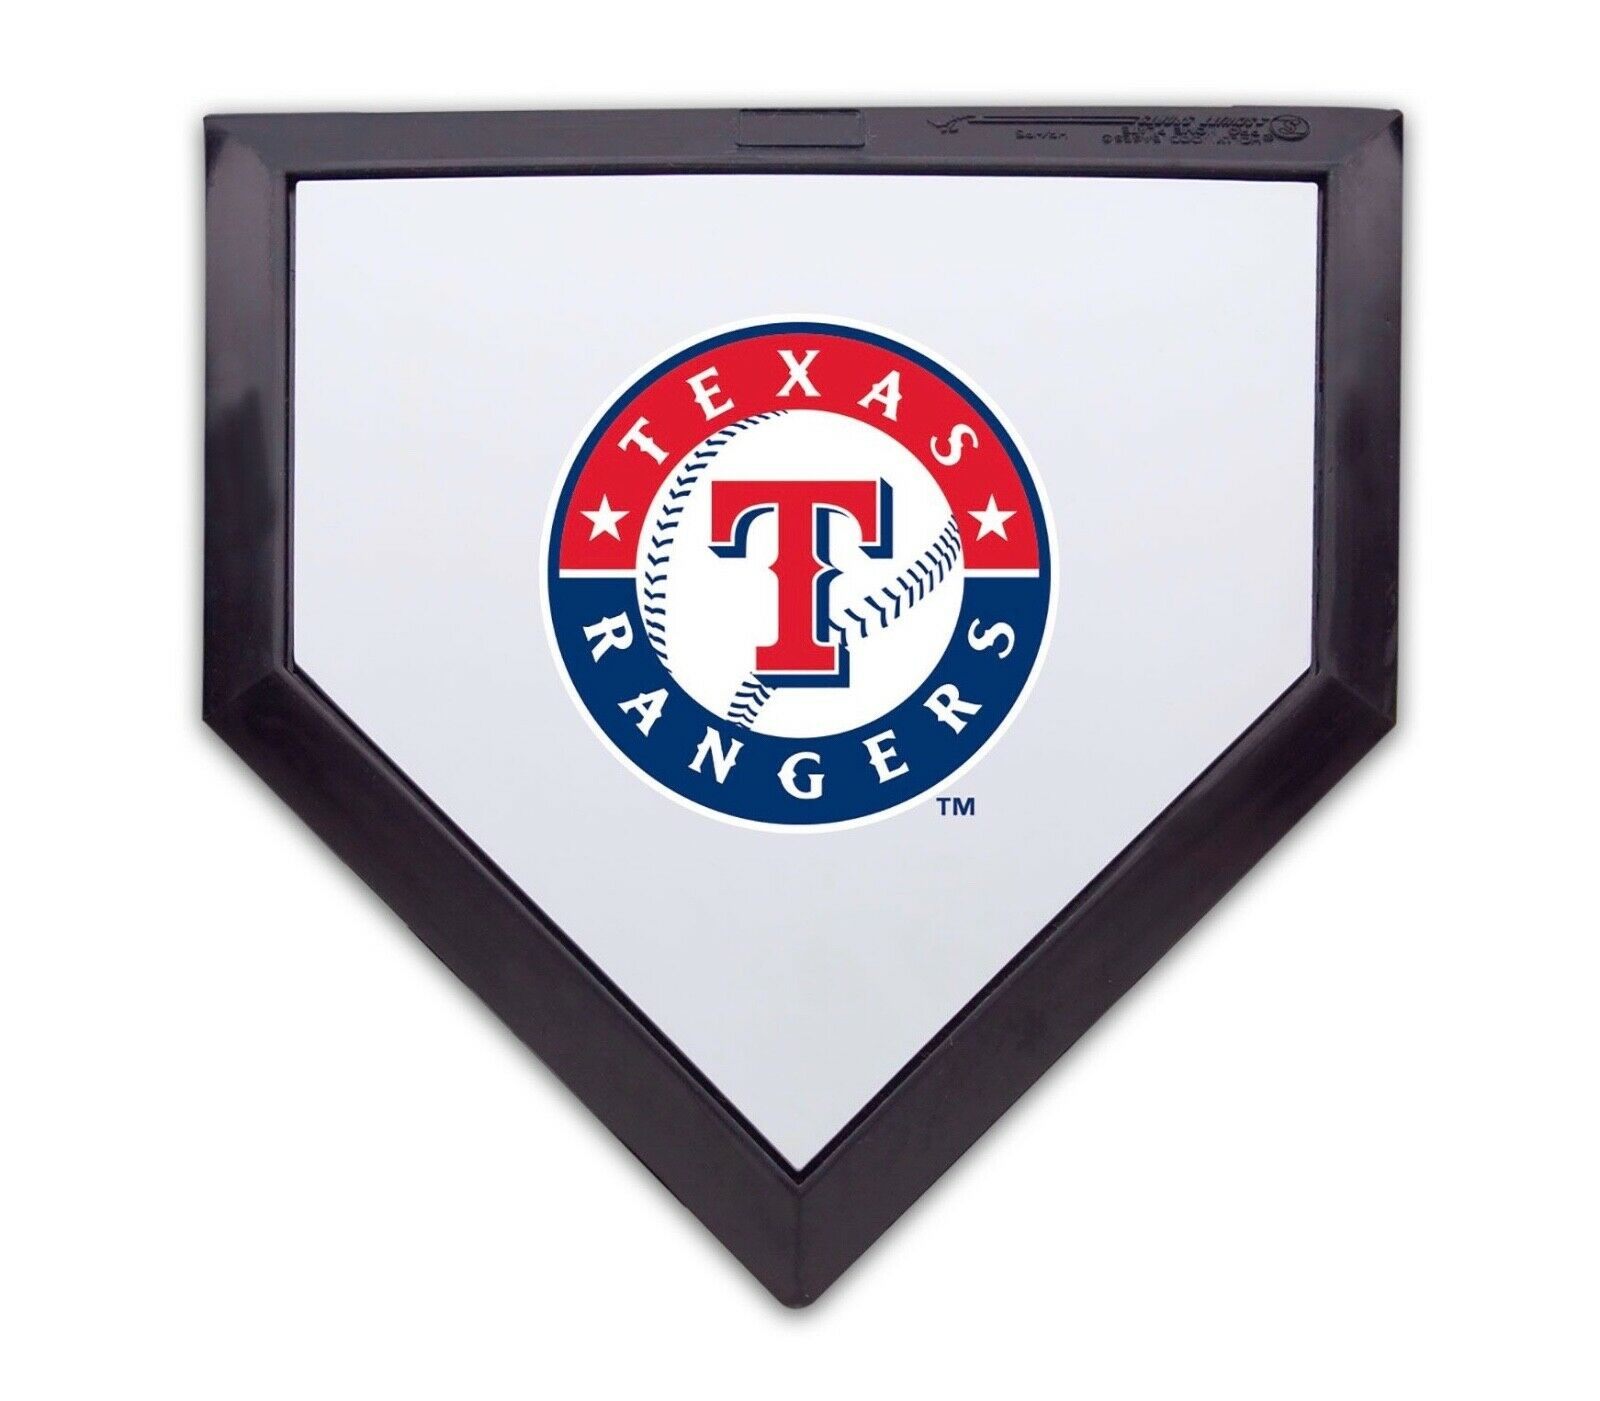 Details about Texas Rangers Authentic Full Size MLB Logo Home Plate.